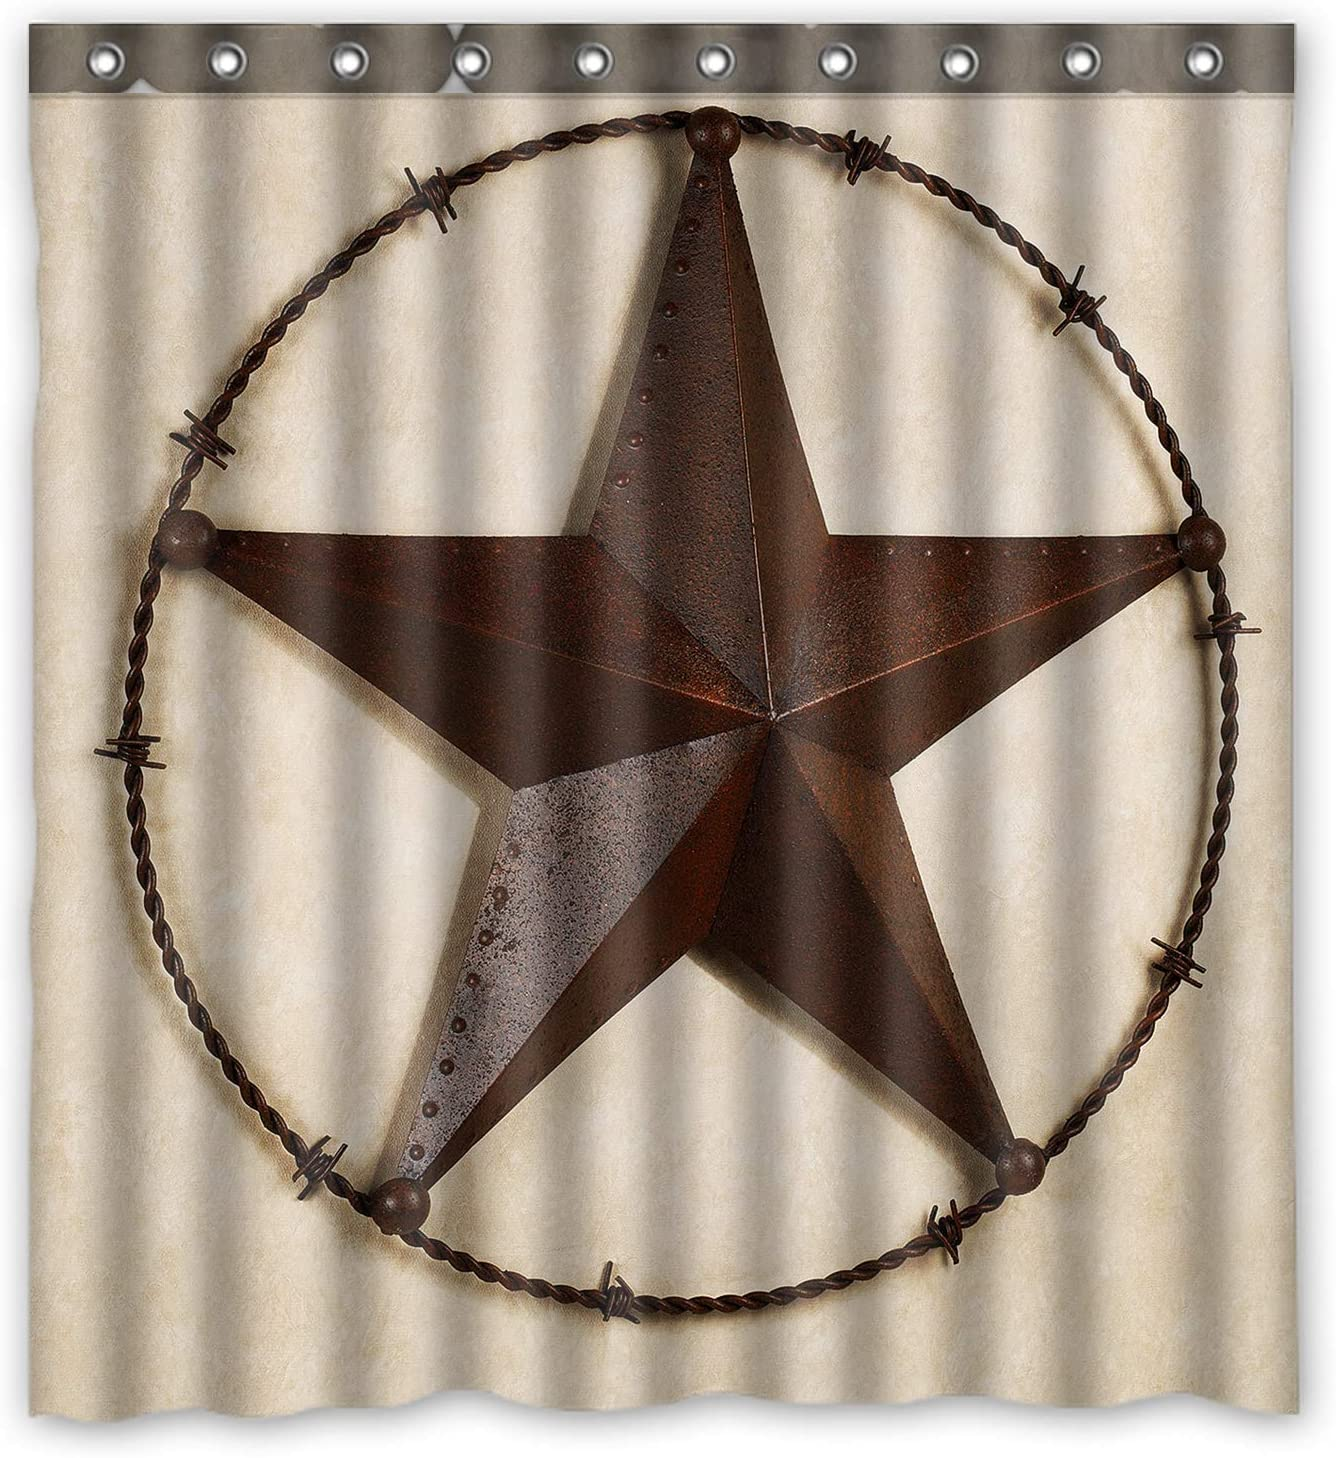 Retro Metal Western Texas Star Wood Waterproof Fabric Bath Shower Curtain 72X72/""